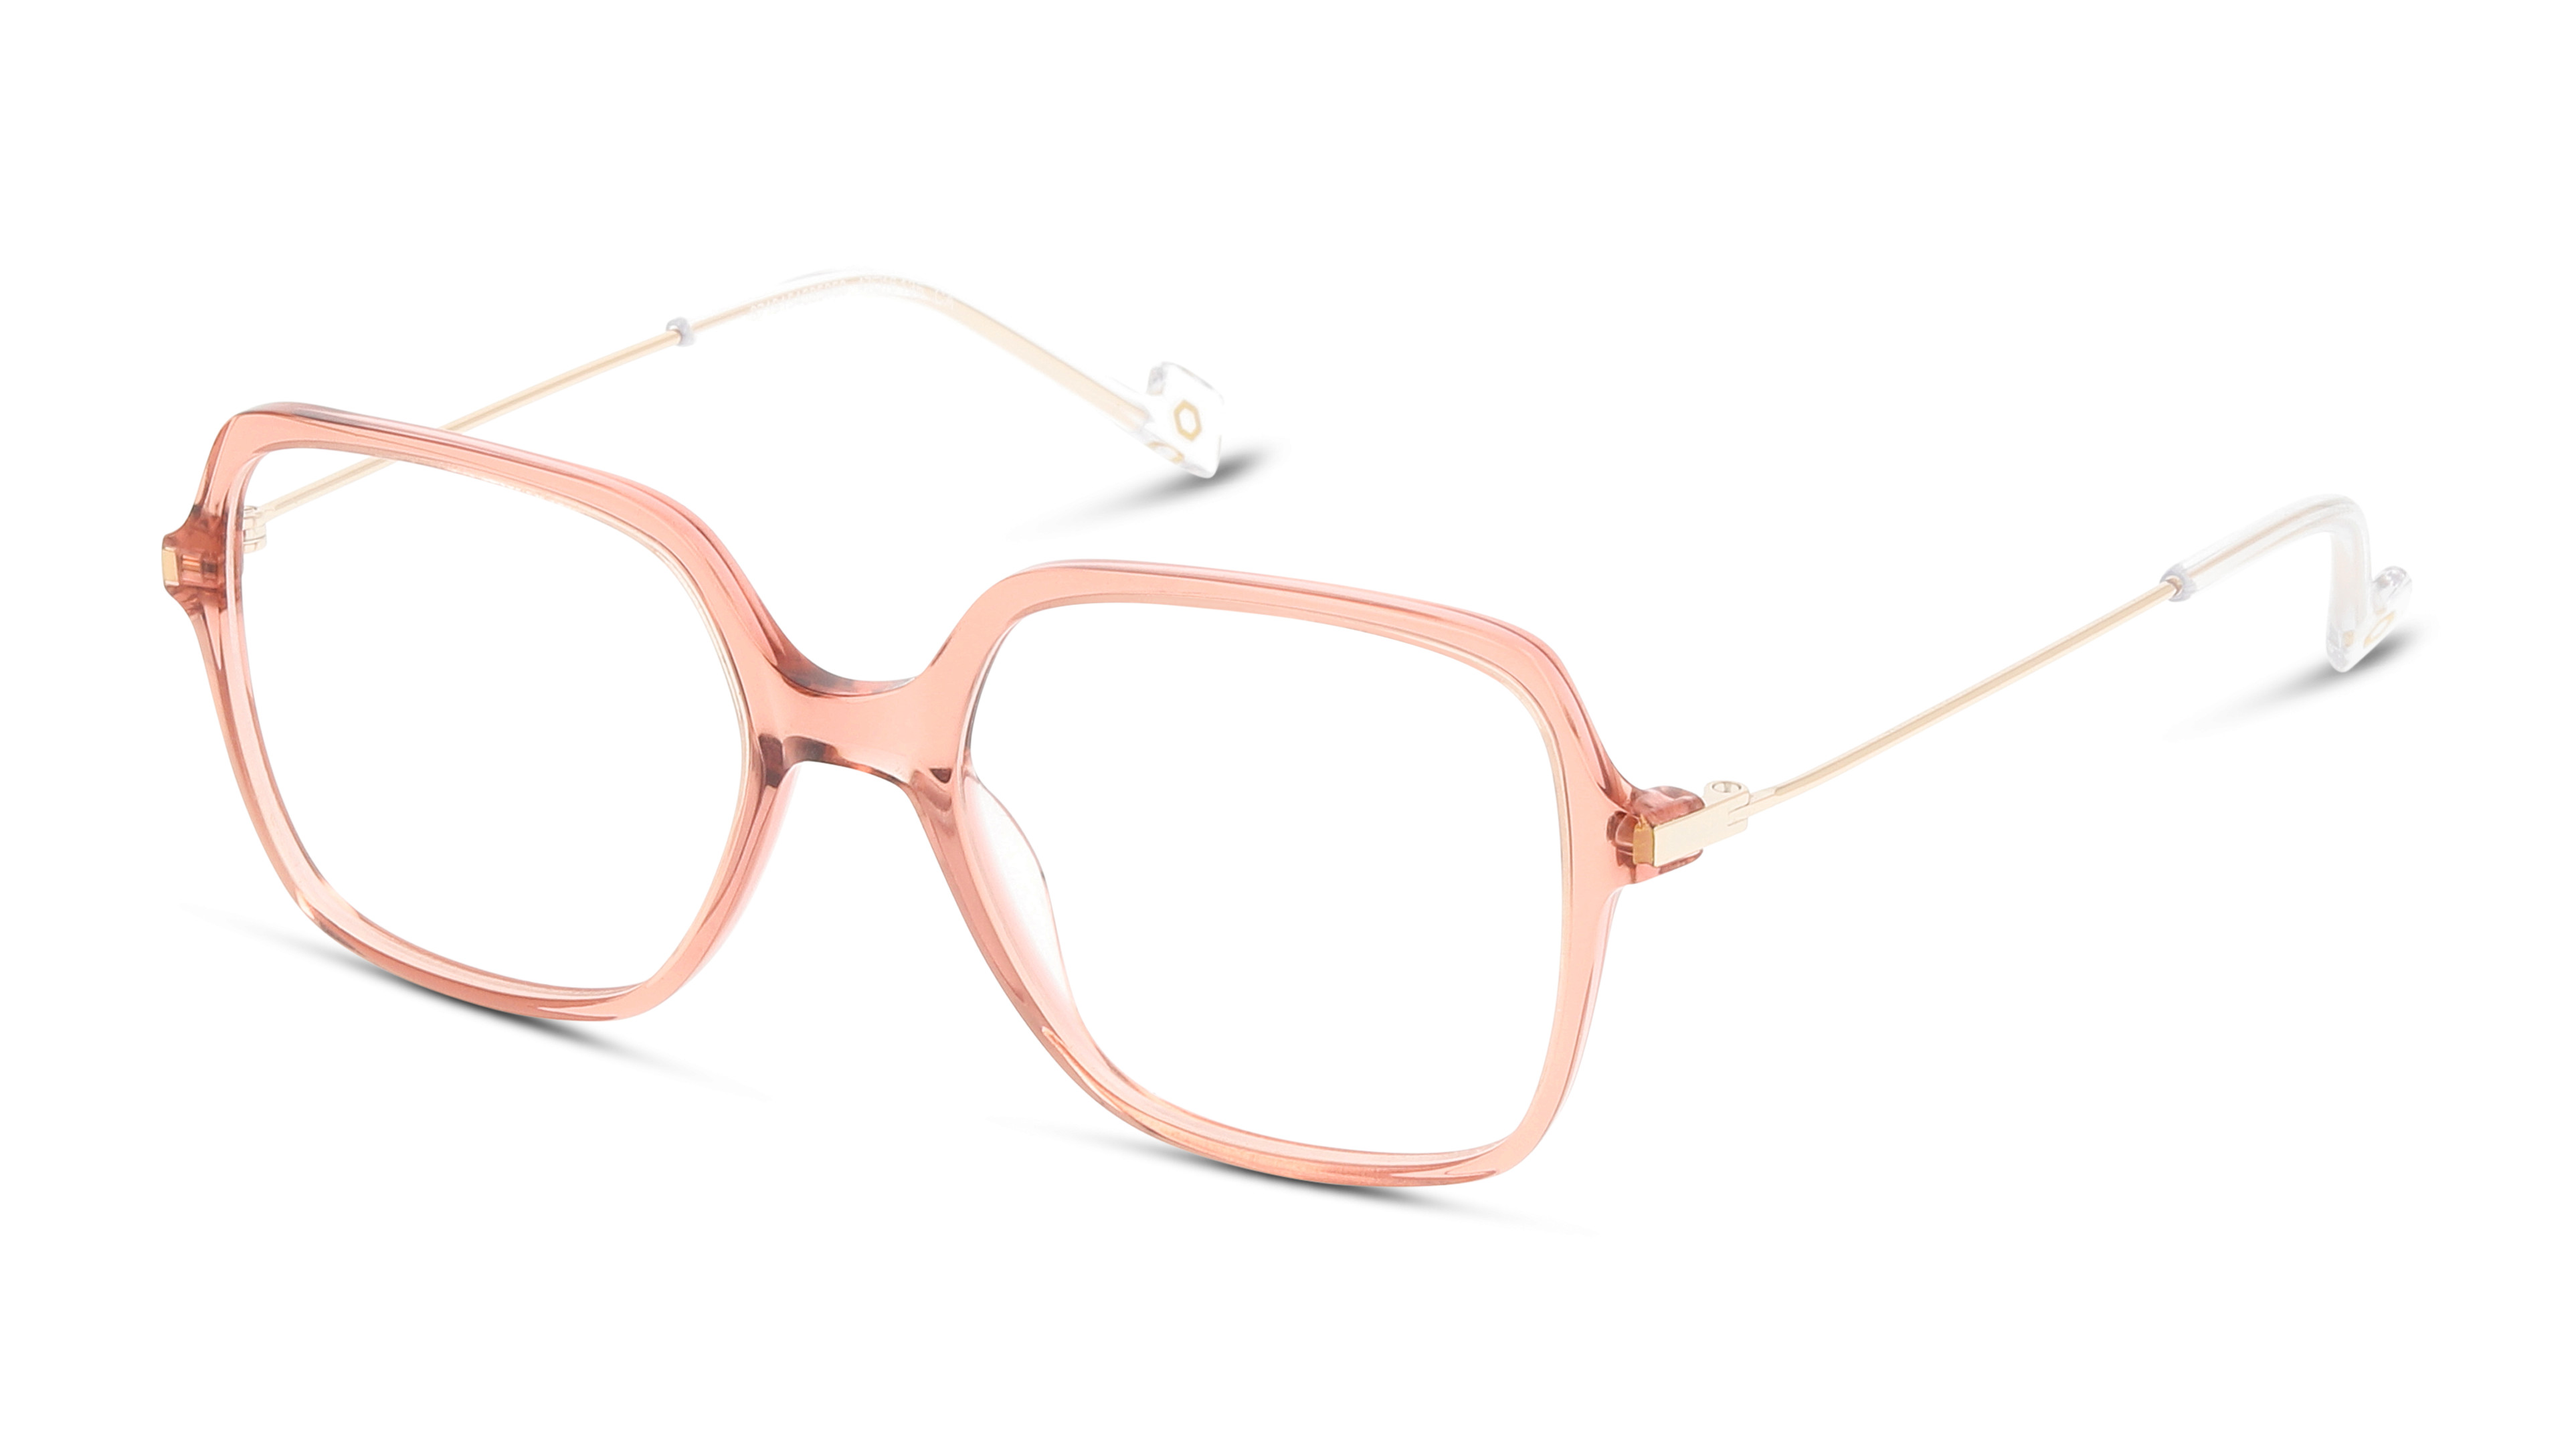 8719154585050-angle-03-in-style-iskt11-eyewear-pink-gold